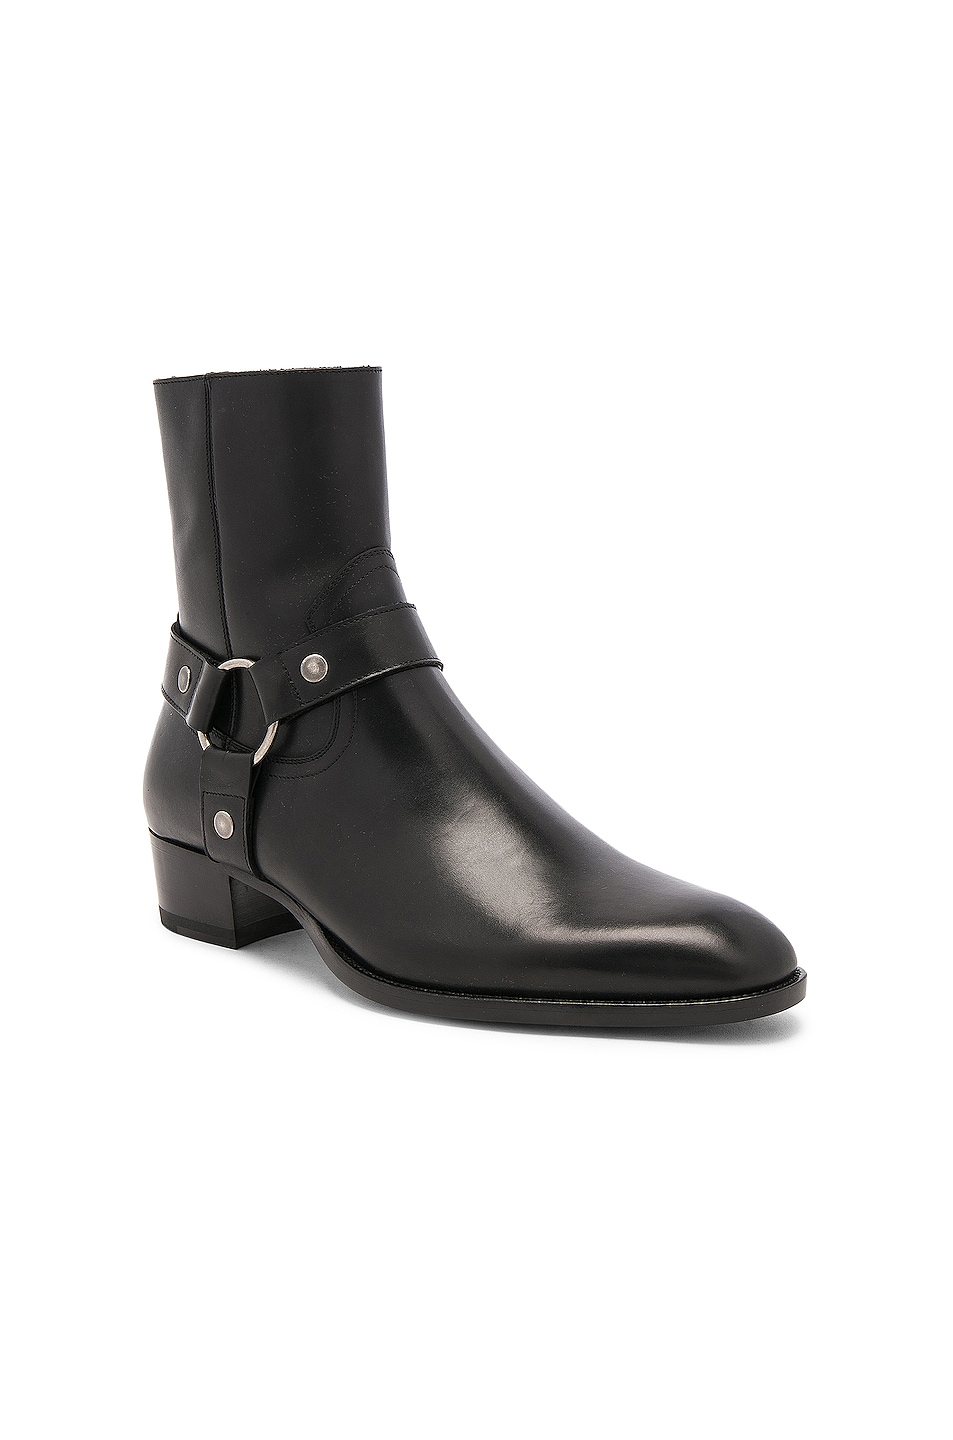 Image 2 of Saint Laurent Leather Wyatt Harness Boots in Black